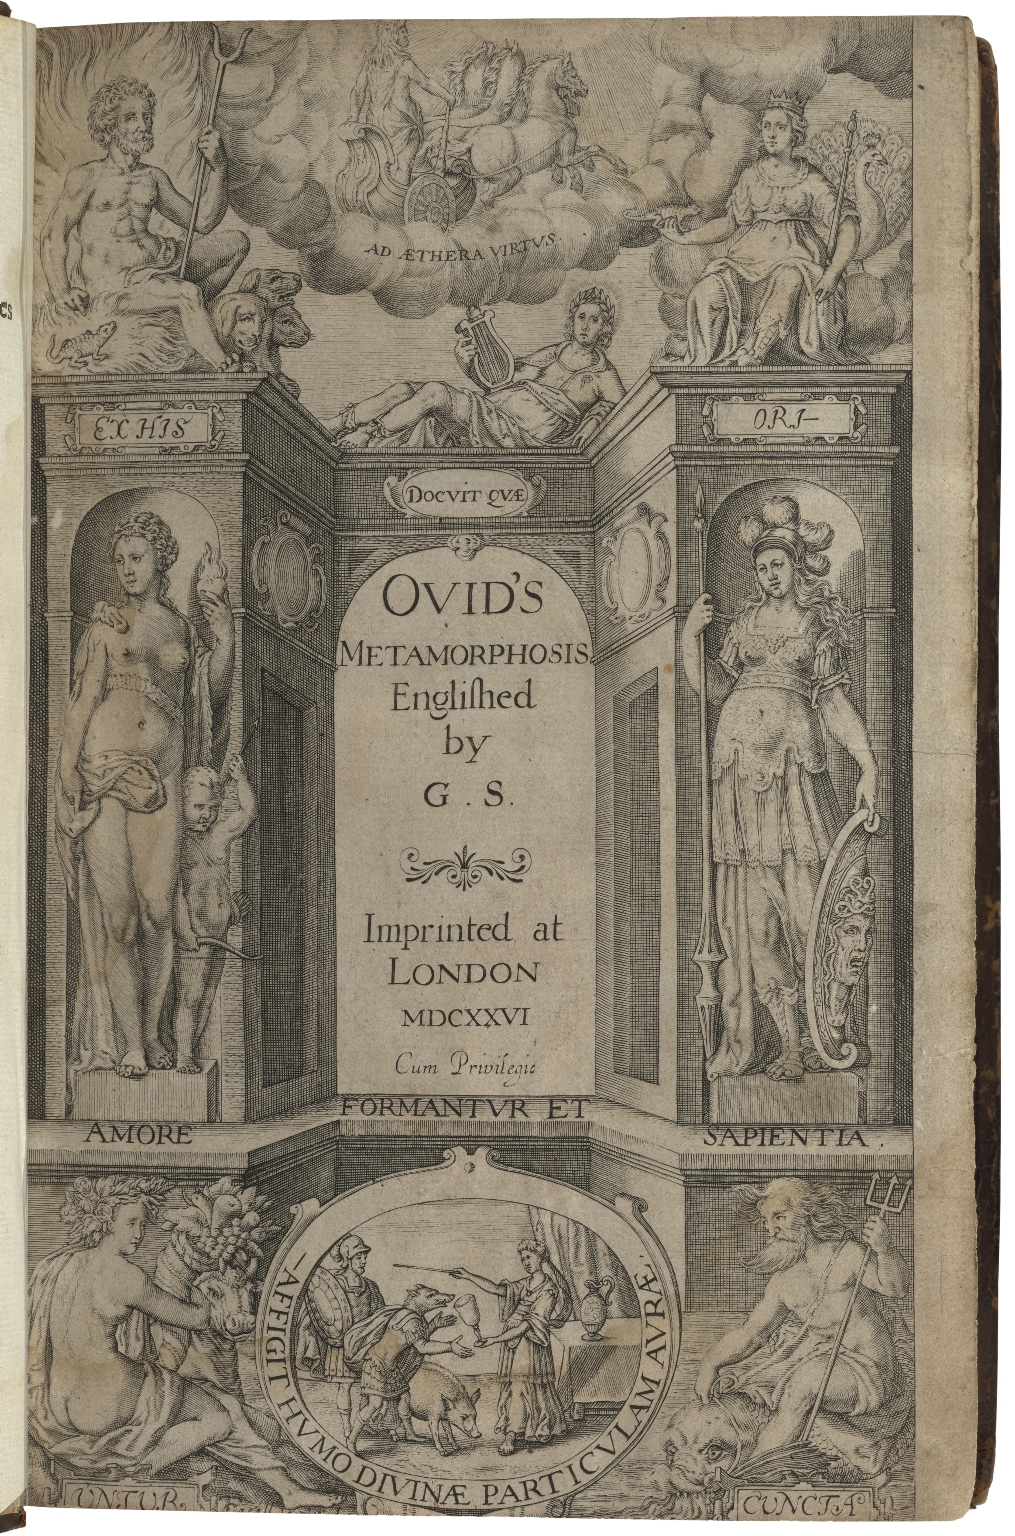 Ovid's Metamorphosis Englished by G. S.